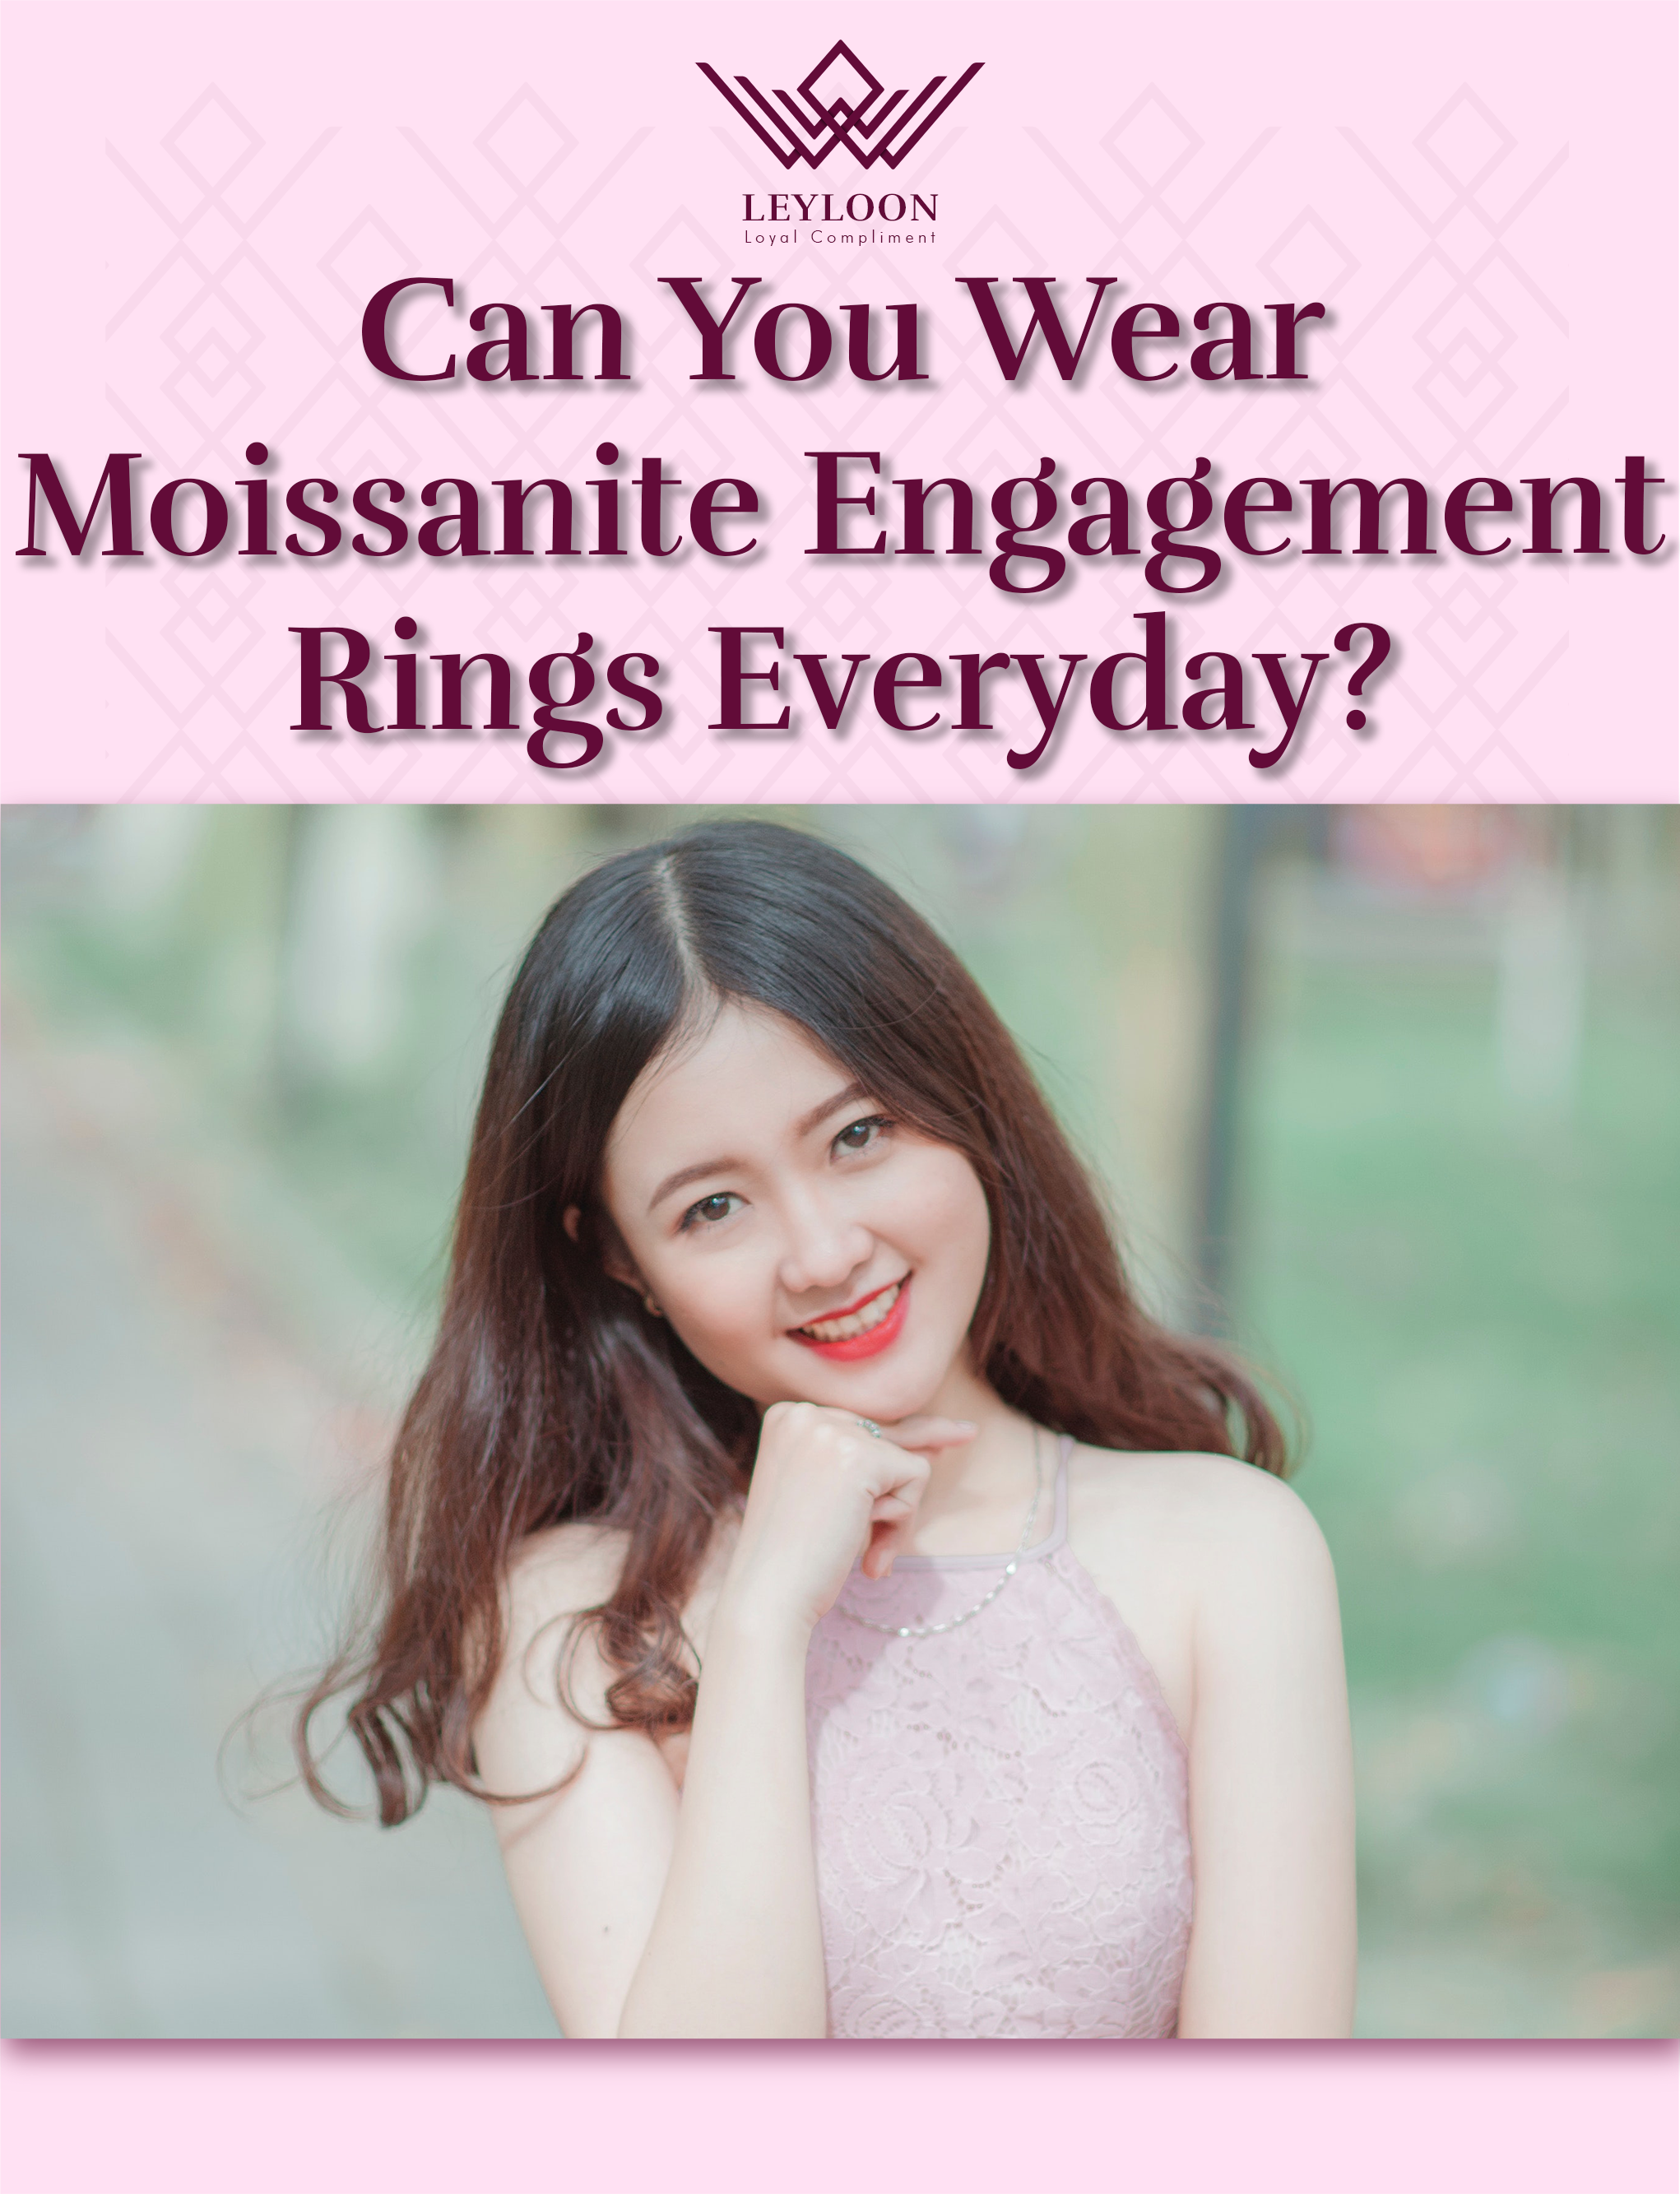 Can You Wear Moissanite Engagement Rings Everyday?